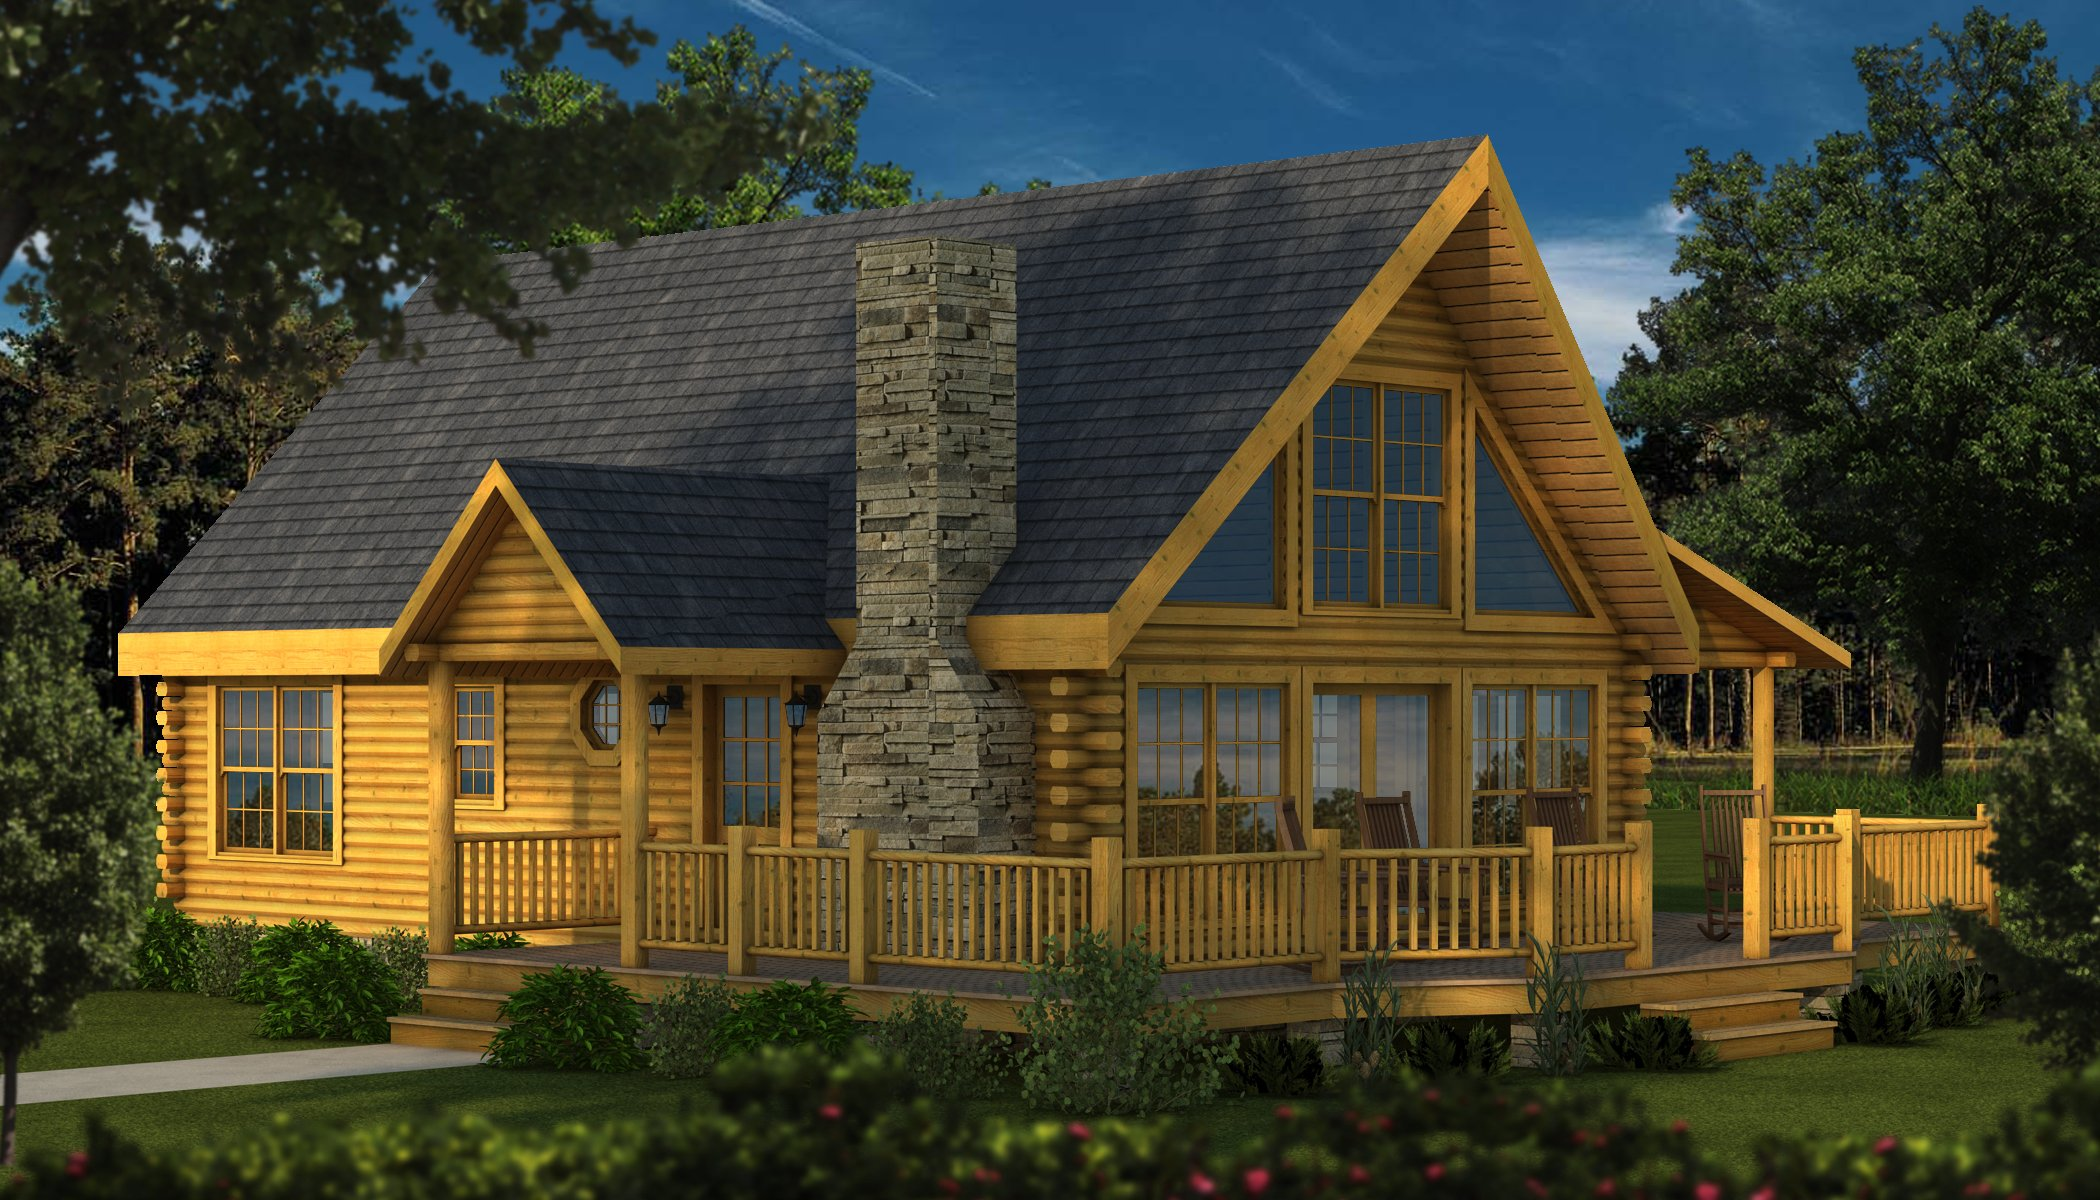 Rockbridge 2 plans information southland log homes Southland log homes